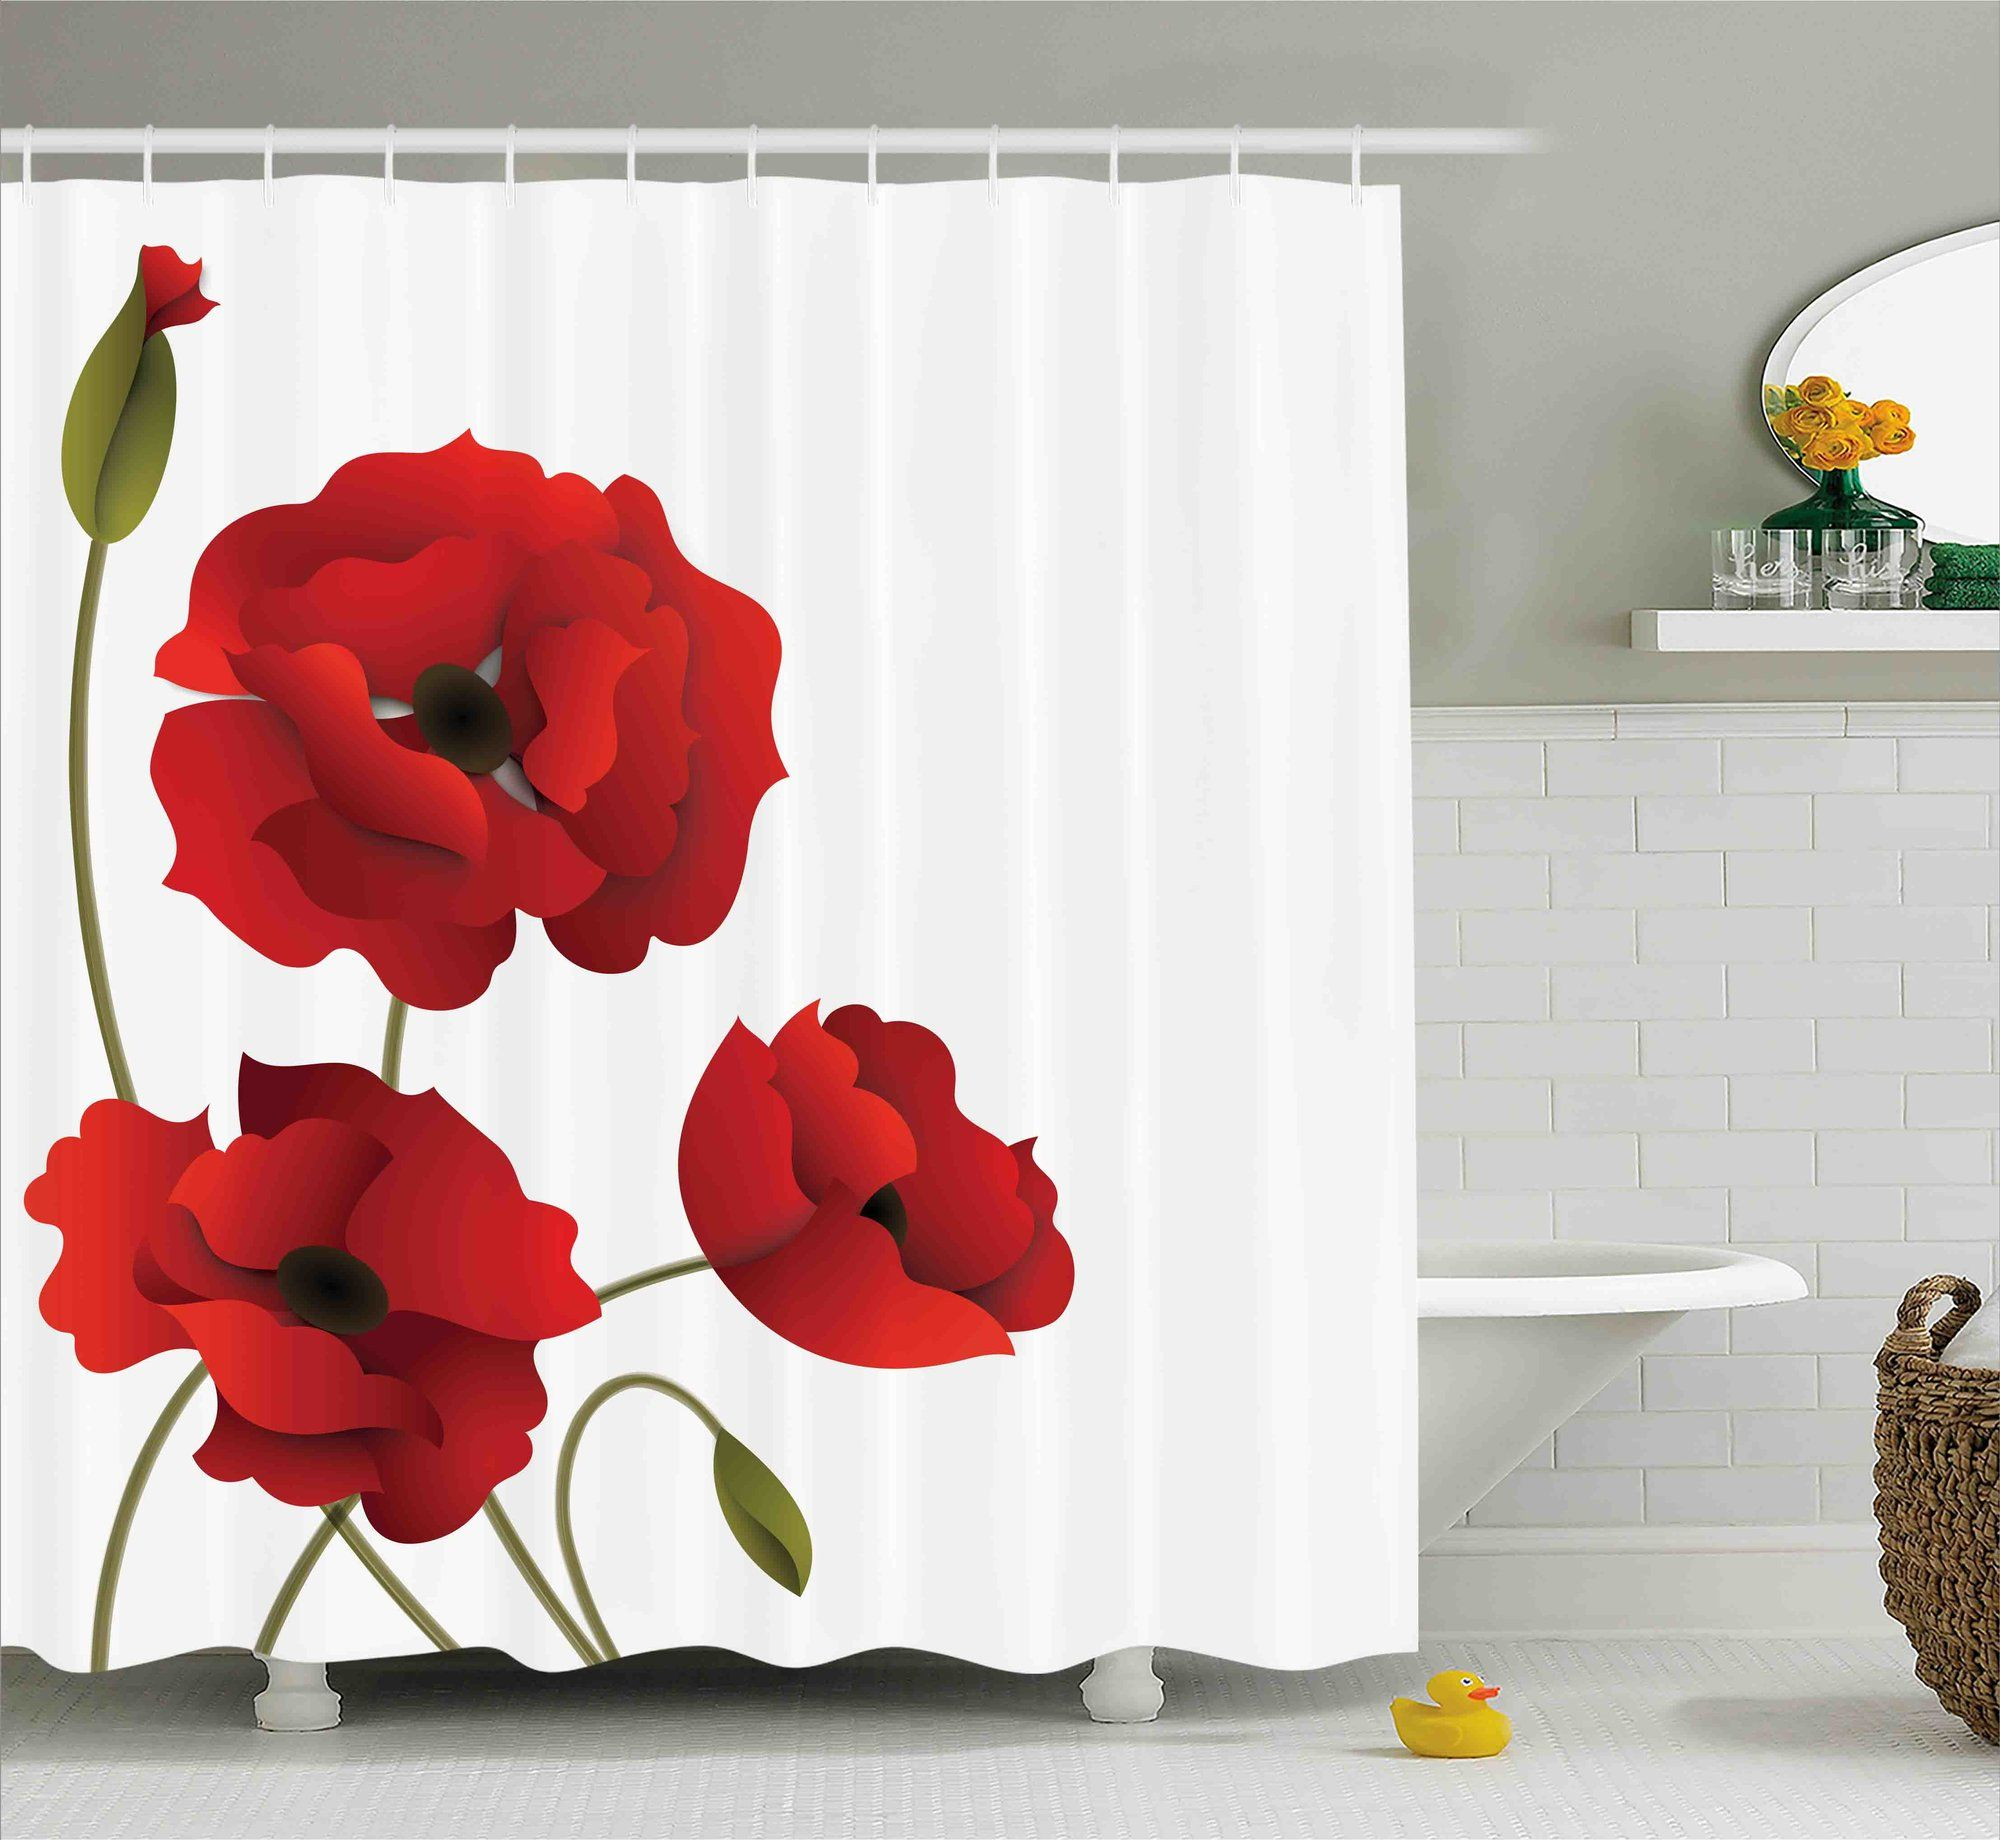 Banks flowers petals and buds shower curtain products pinterest